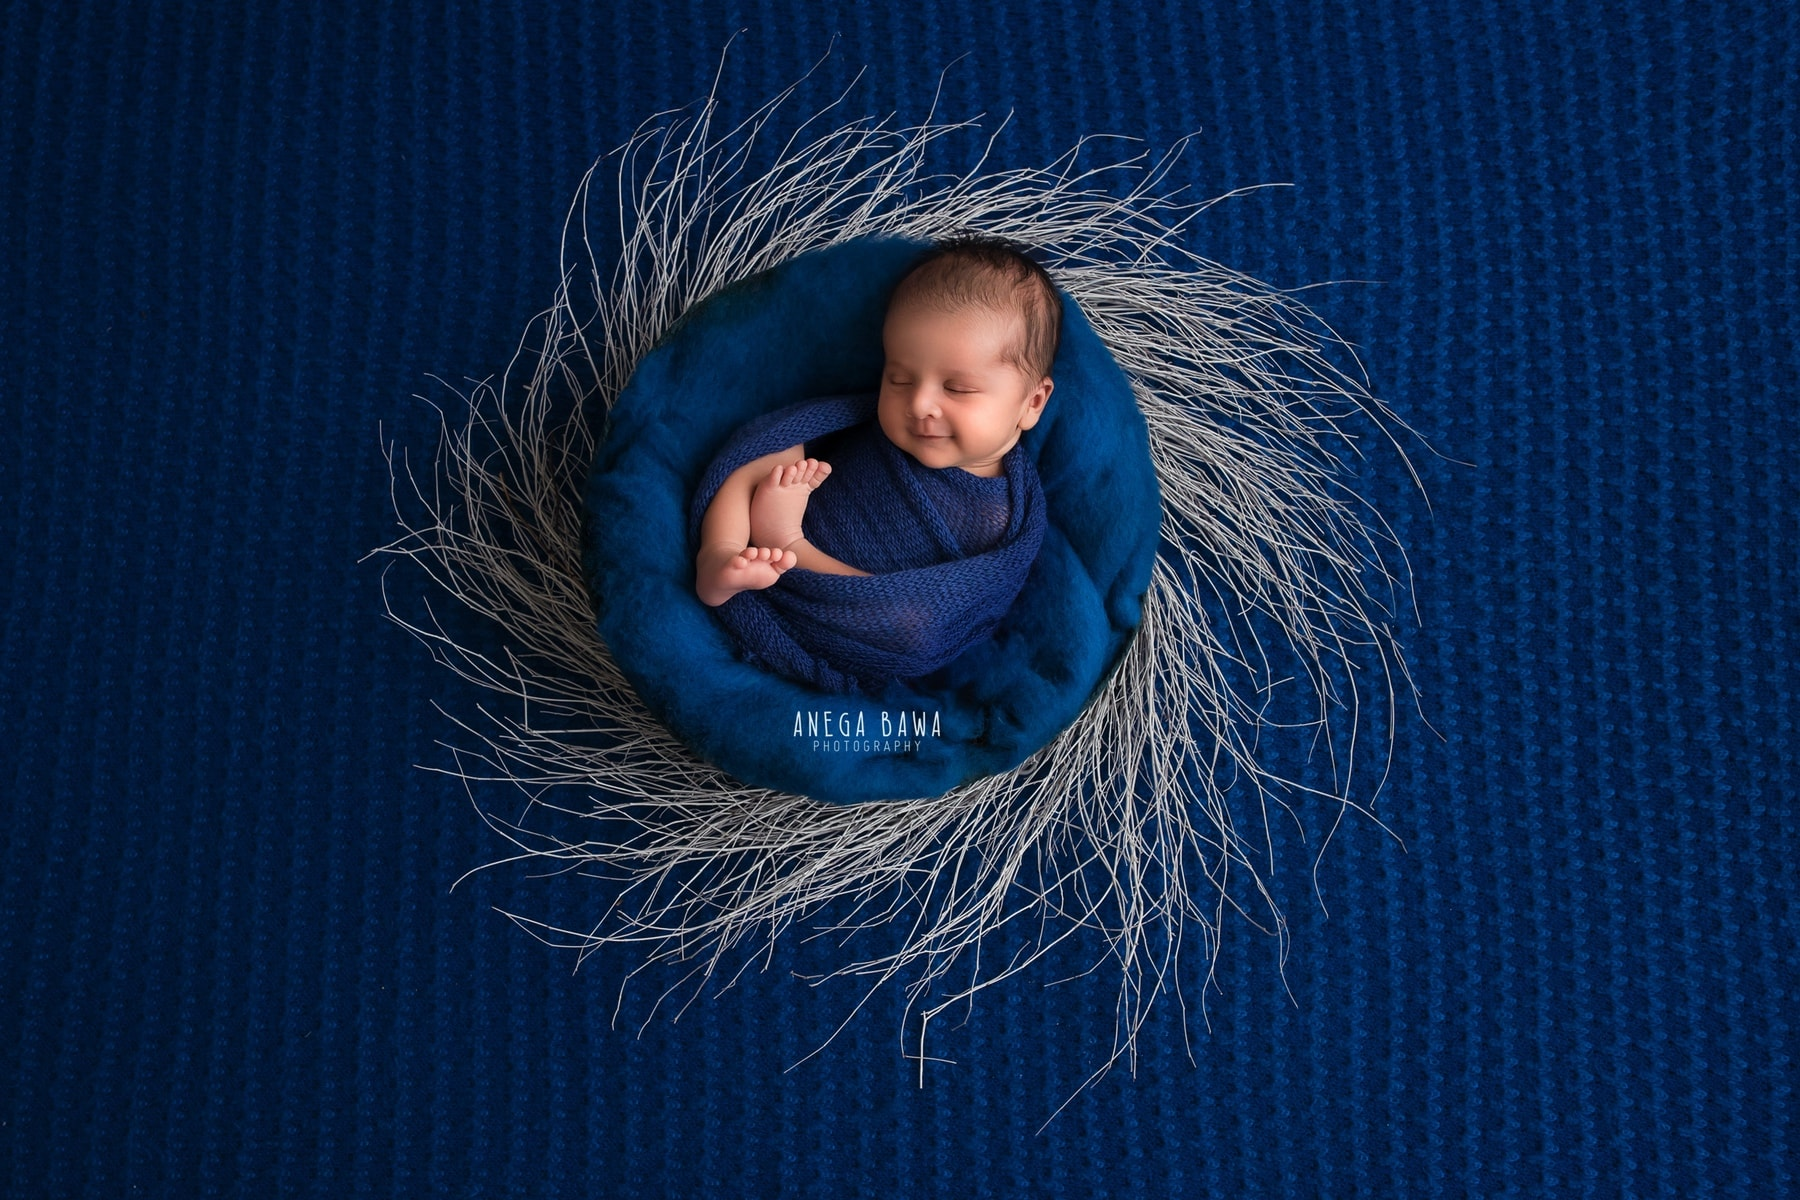 blue newborn photography delhi 12 days baby boy photoshoot gurgaon anega bawa